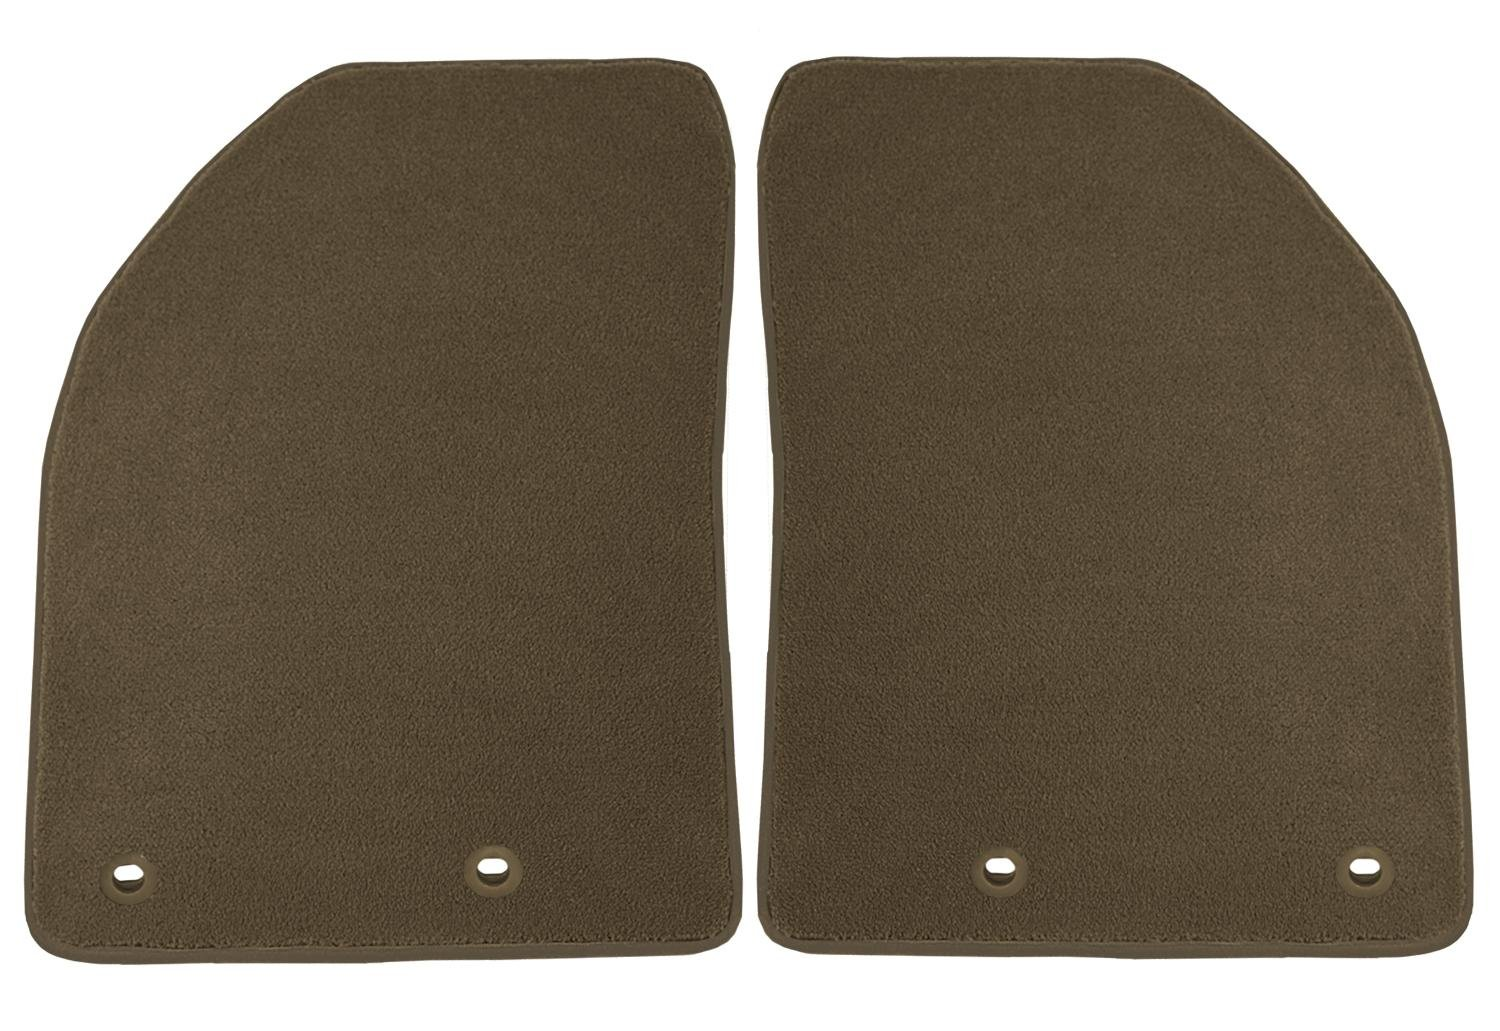 CFMAX1DG9014 Nylon Carpet Coverking Custom Fit Front Floor Mats for Select Dodge Caravan Models Black